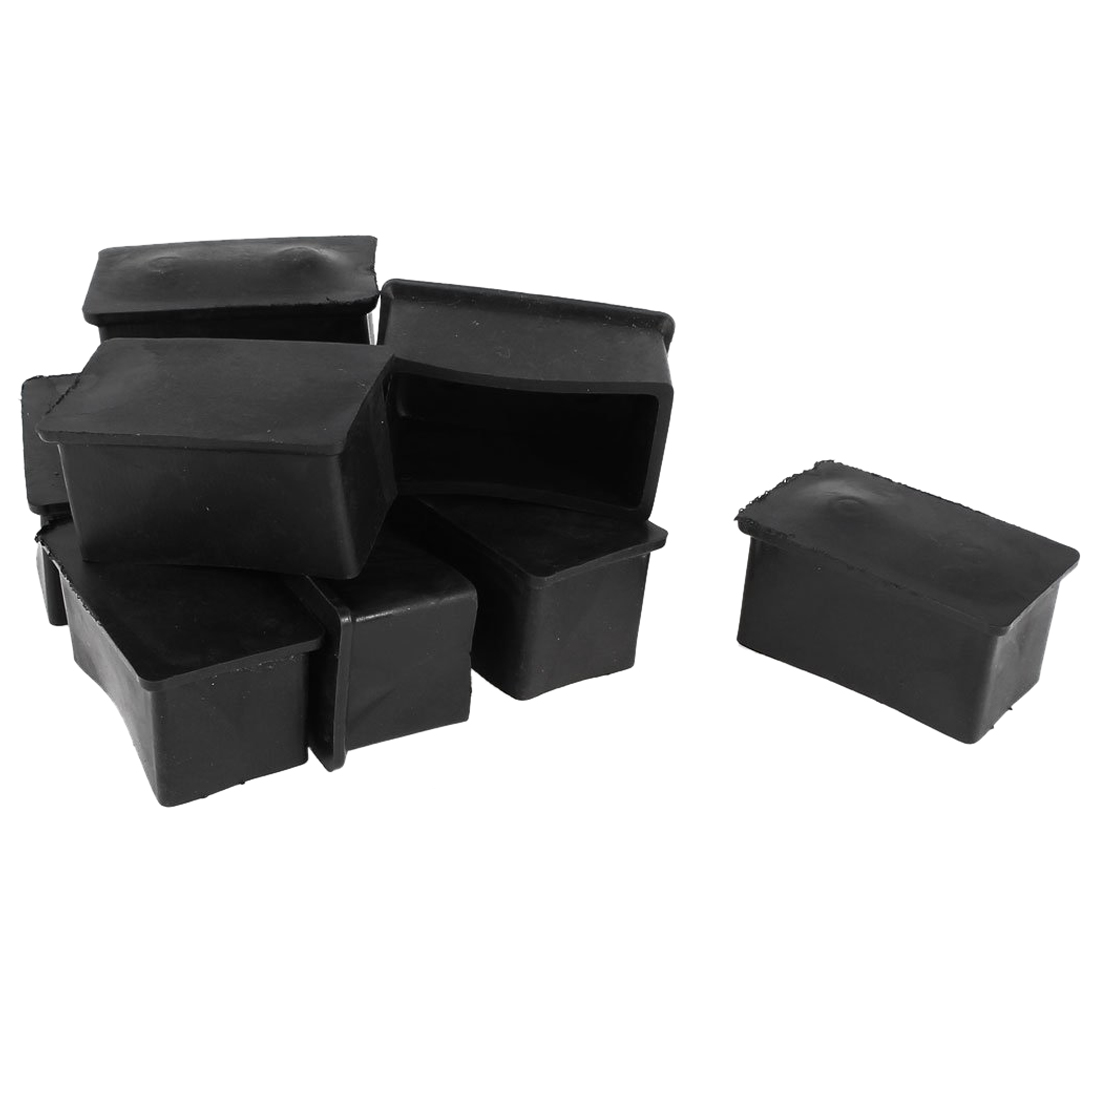 chair leg caps amazon recliner chairs rubber table foot cover furniture protectors